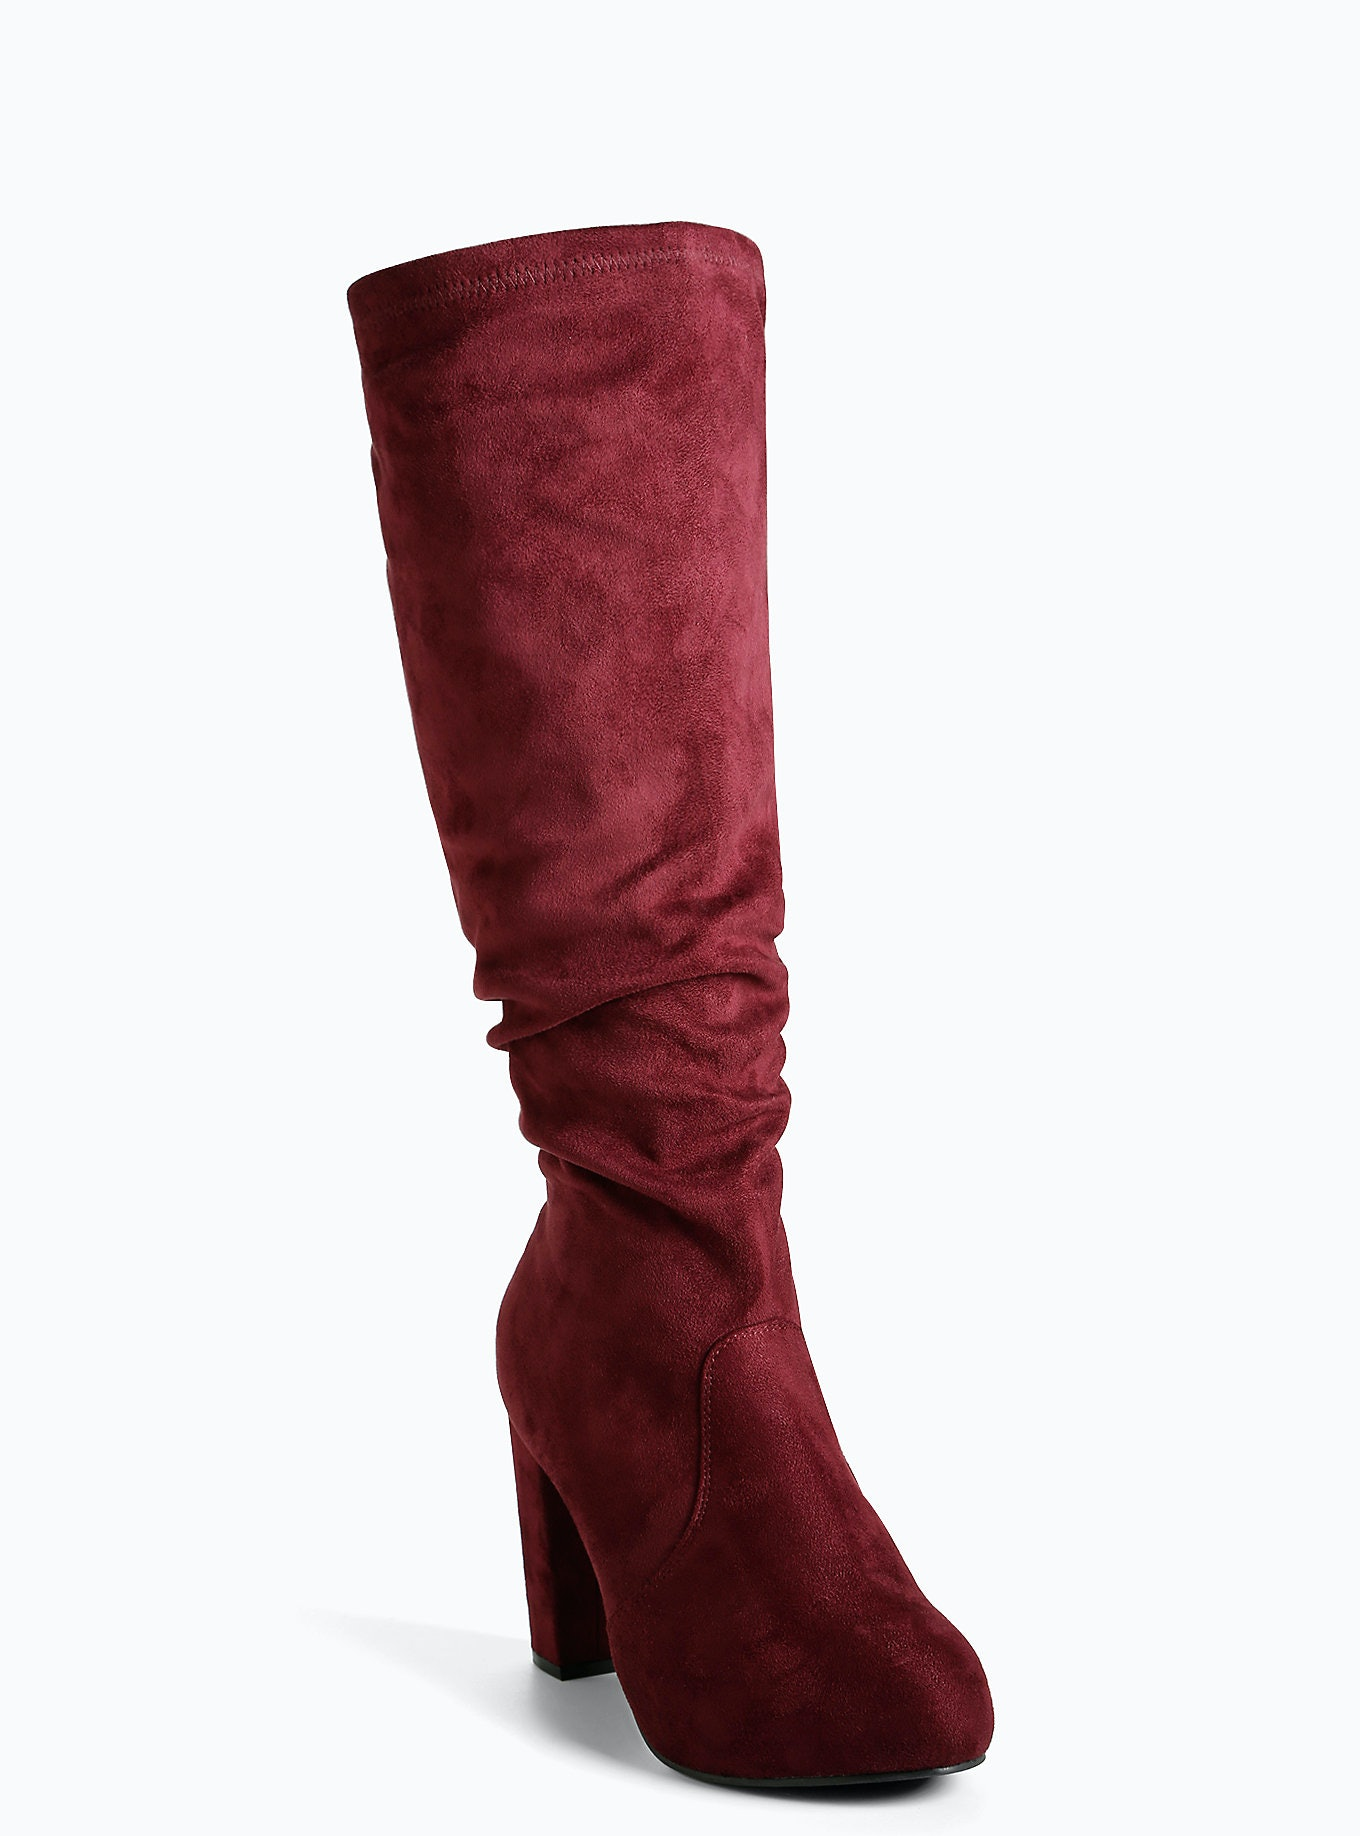 bccb49a5d6f 13 Wide Calf Boots For The Best Back-To-School Vibes — PHOTOS